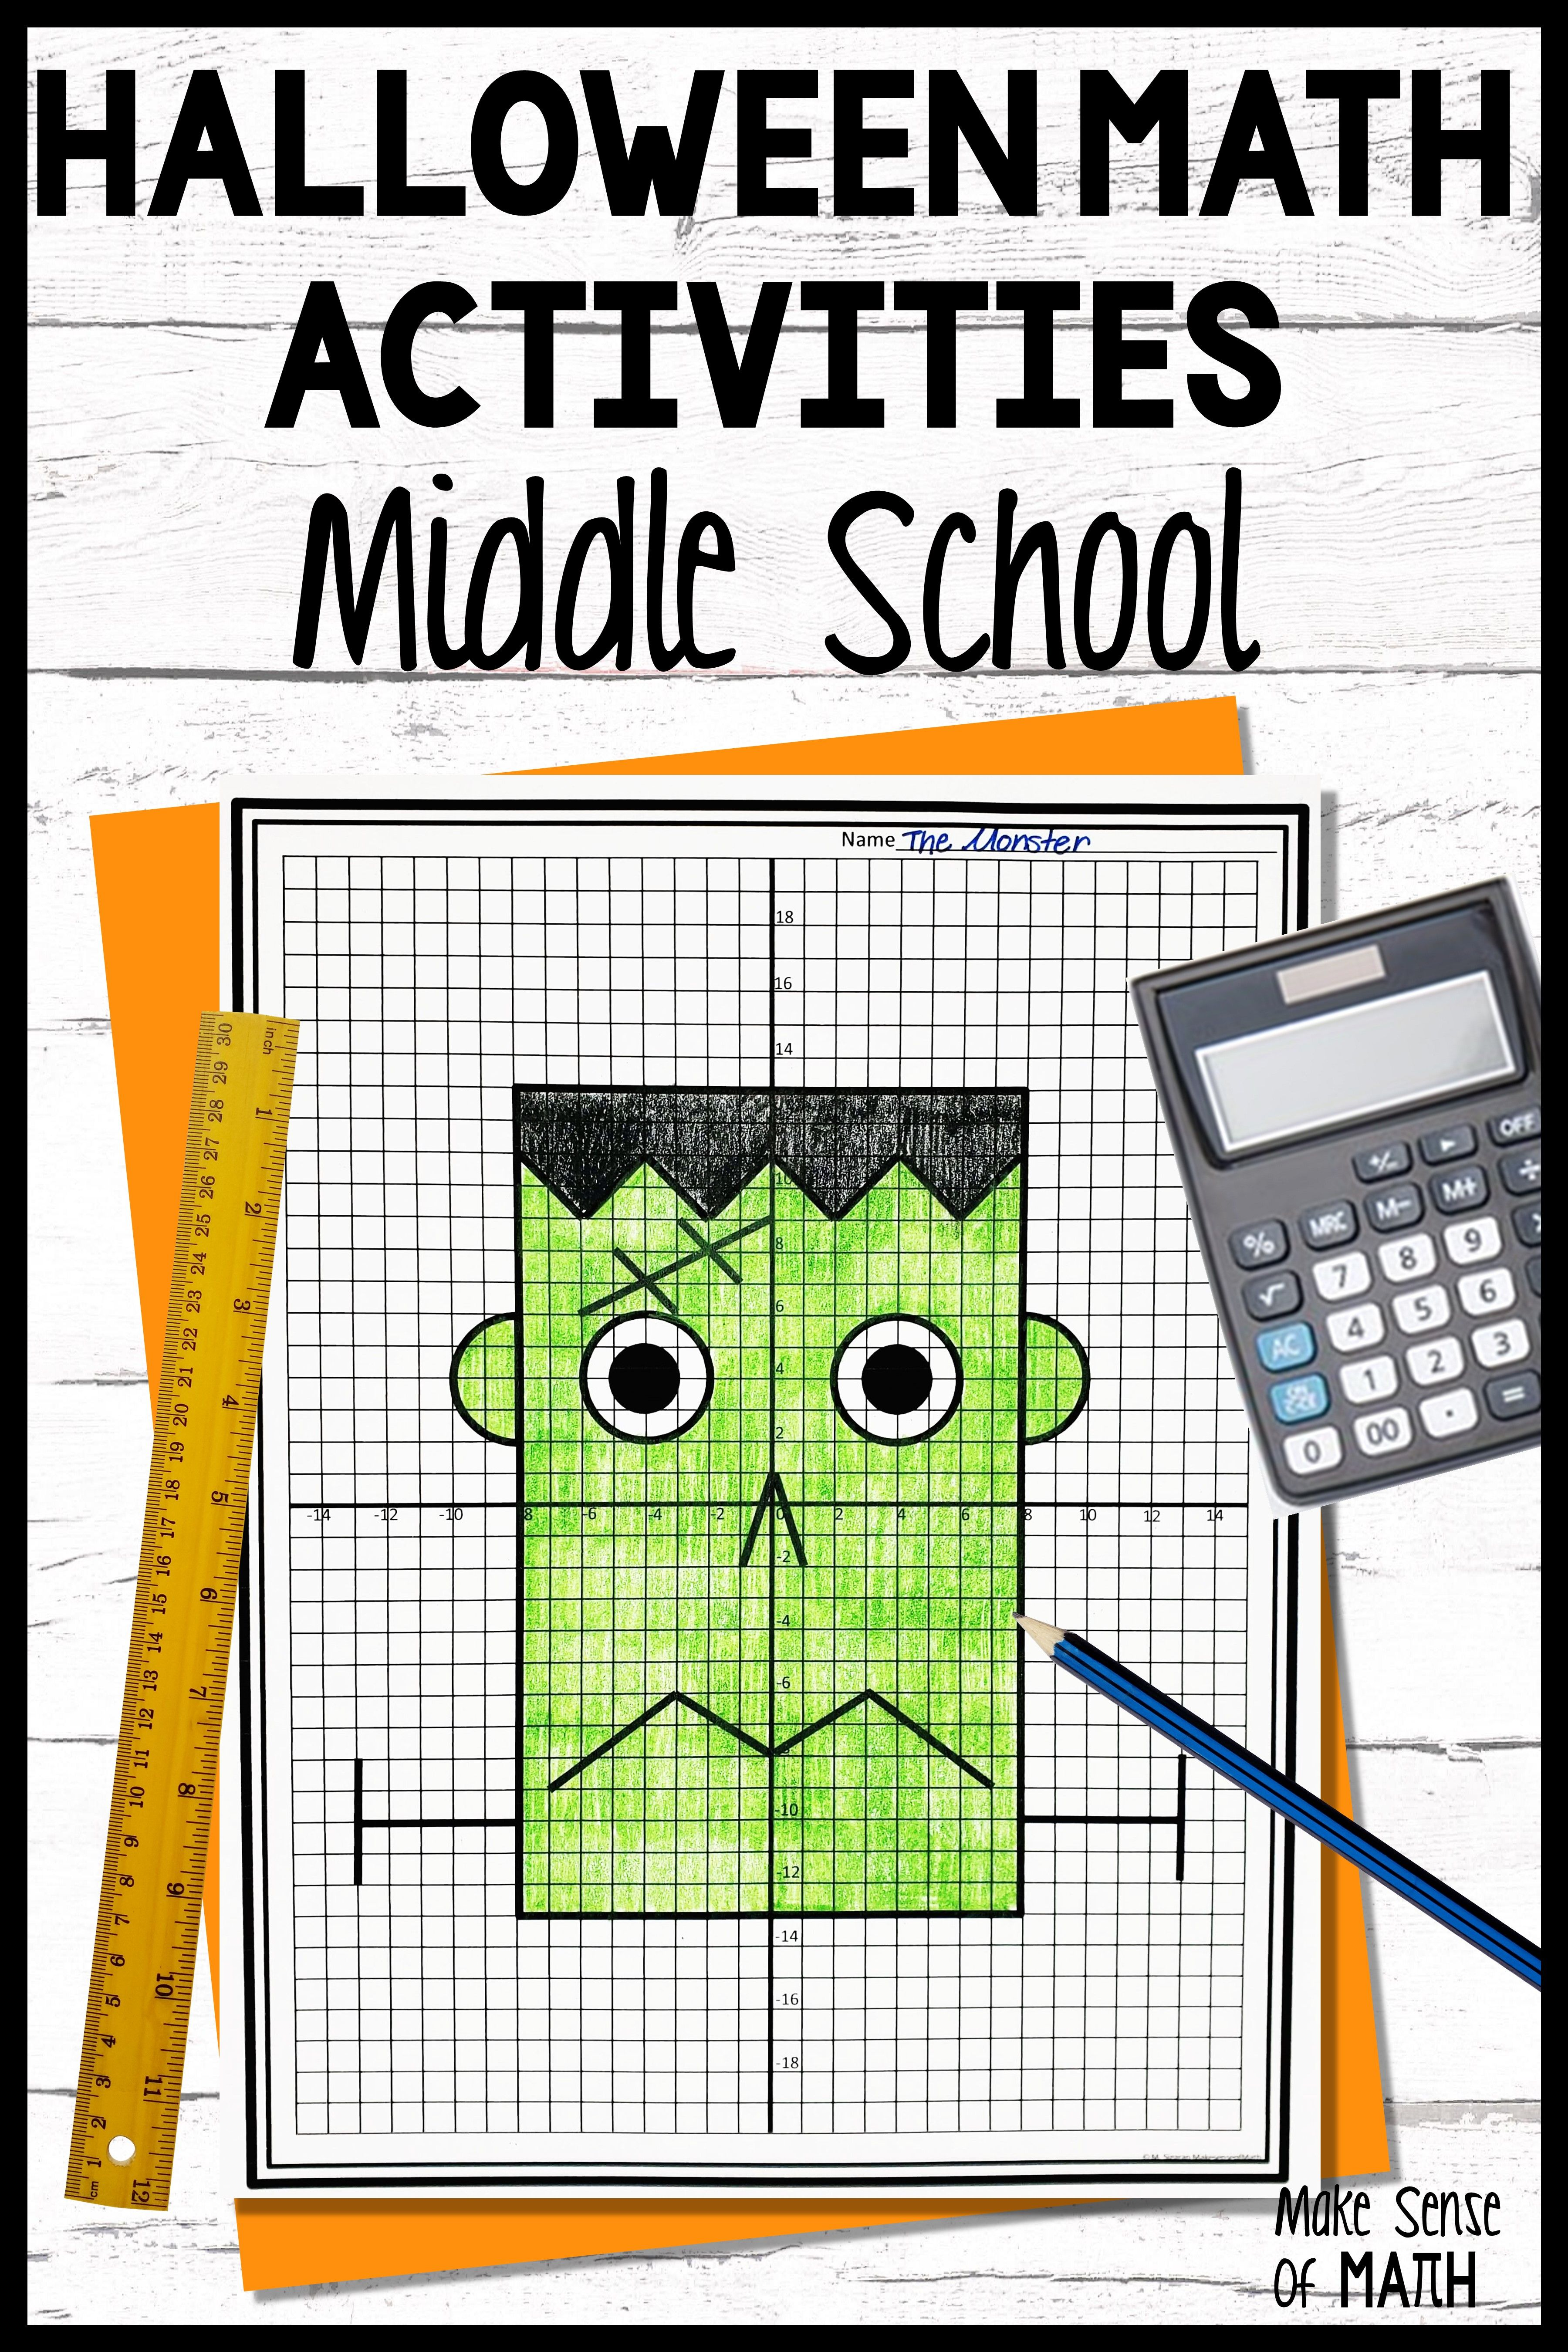 Halloween Math Activities and Worksheets for Middle School Math   Halloween  math activities [ 5400 x 3600 Pixel ]